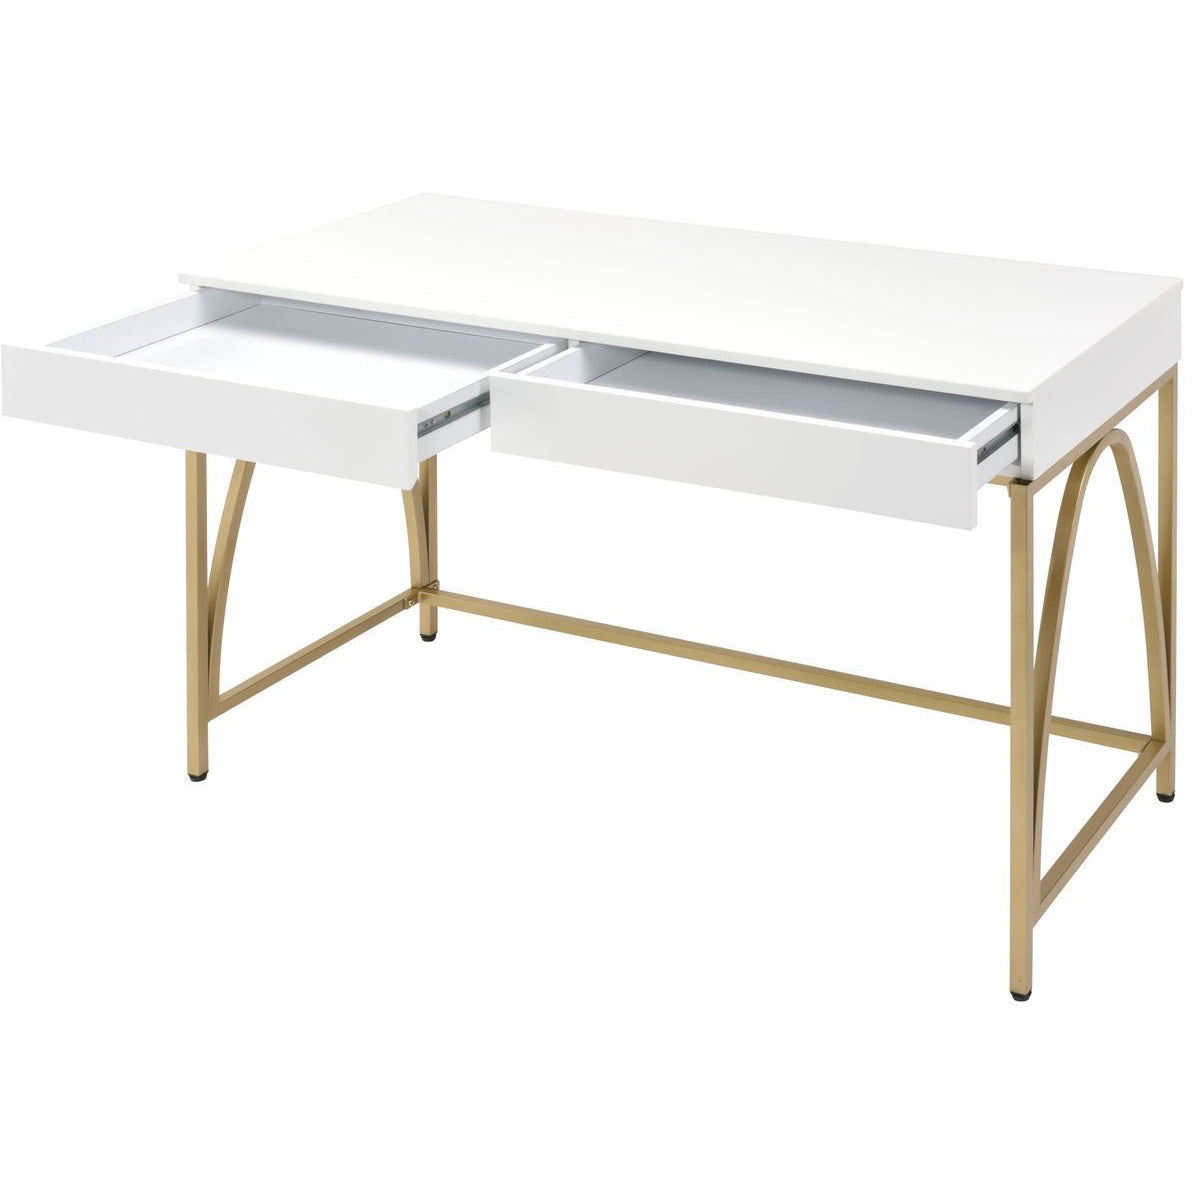 Beige Writing Desk w/2 Drawers White High Gloss & Gold BH92660